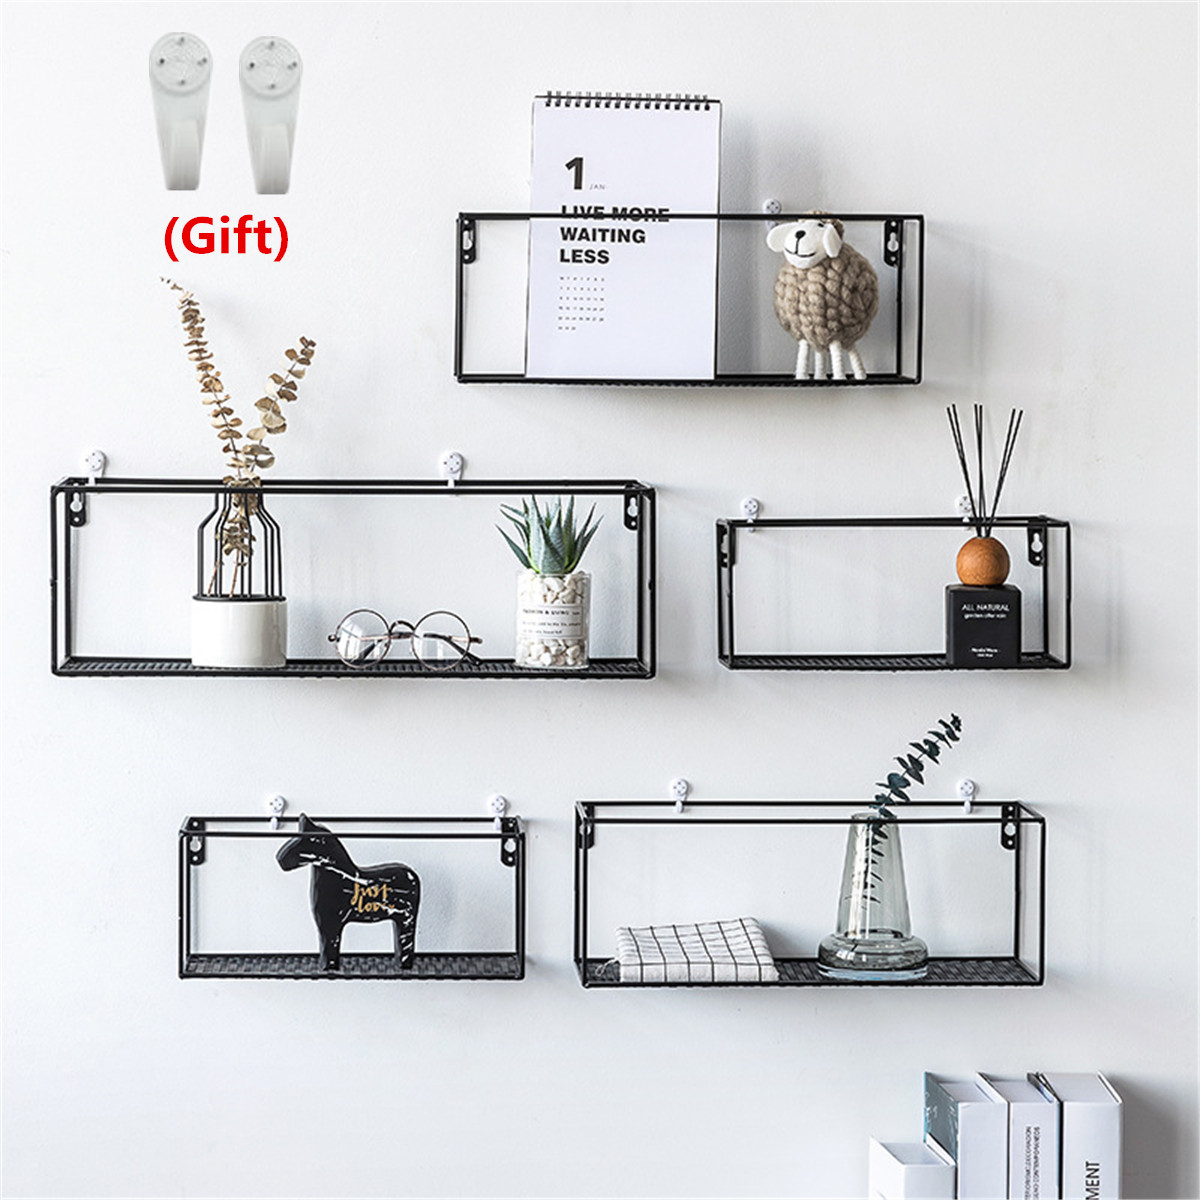 Us 10 97 50 Off Iron Wall Shelf Wall Mounted Storage Rack Organization For Kitchen Bedroom Home Decor Kid Room Diy Wall Decoration Holder In